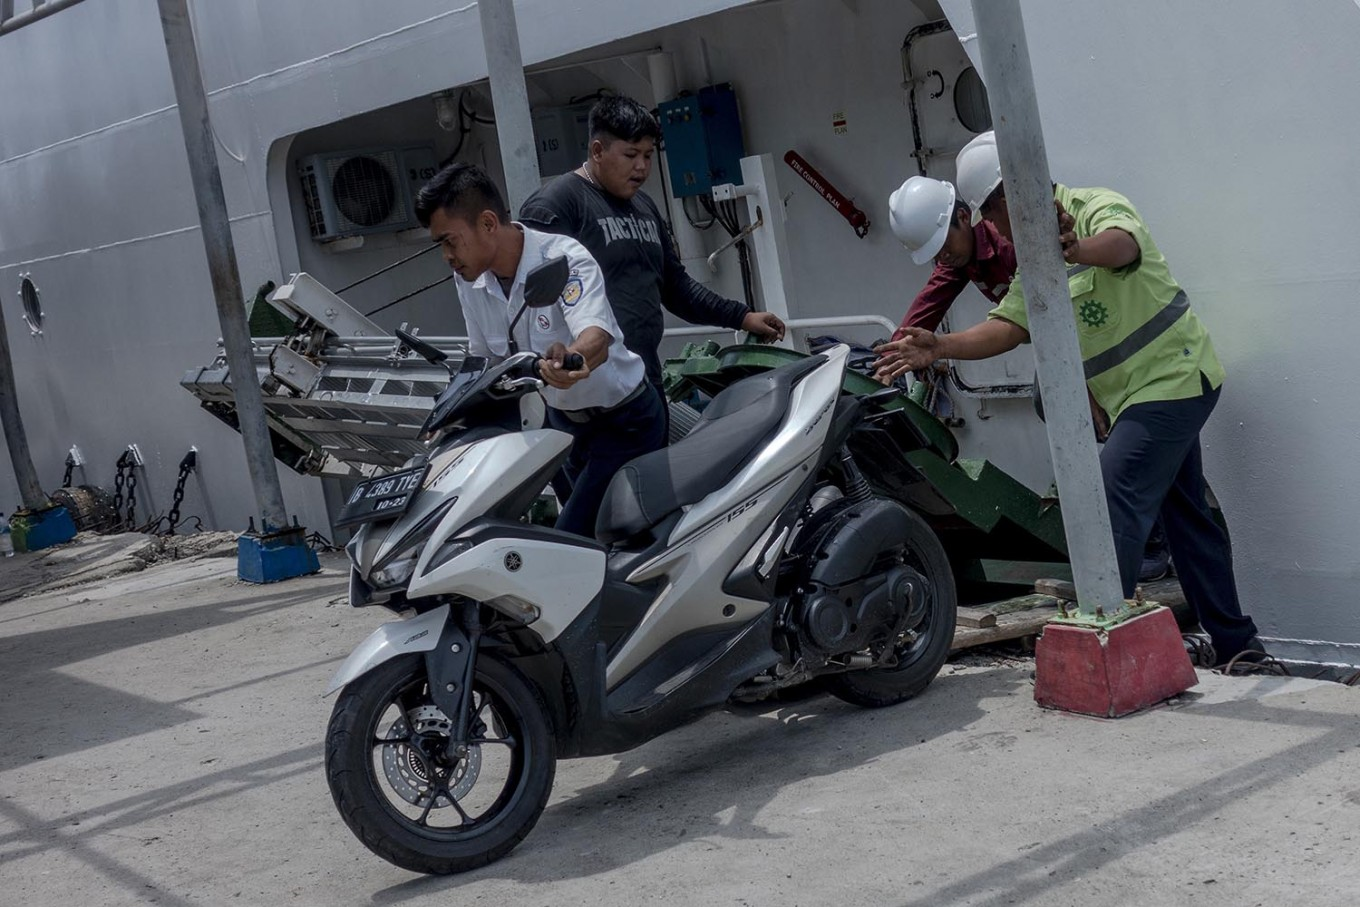 Attendants help unload a motorcycle from the ferry at Pulau Pramuka docks. JP/Rosa Panggabean